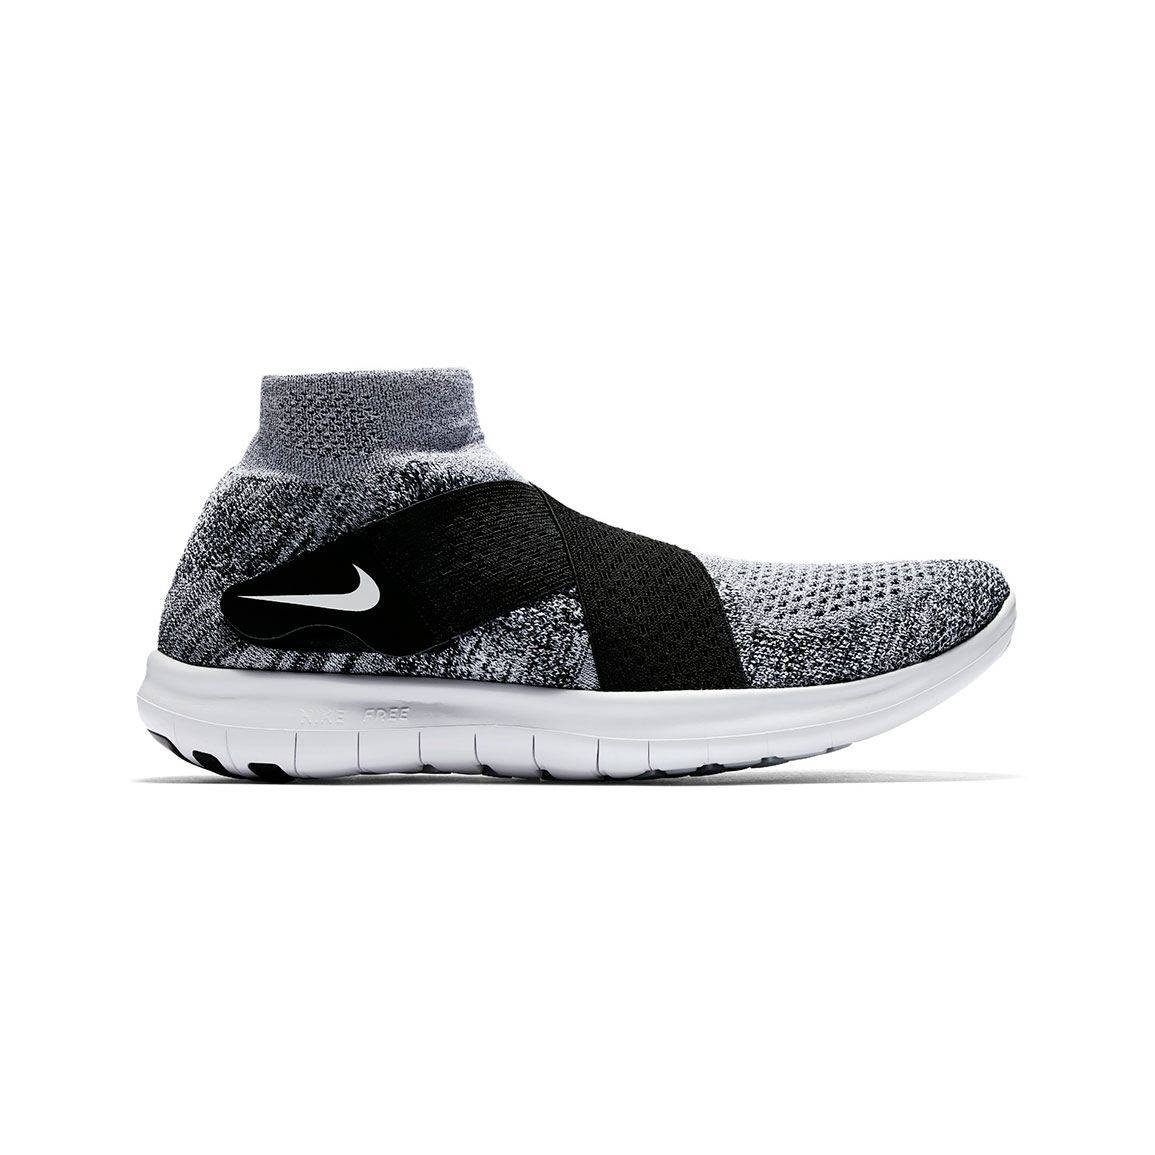 Men's Nike Free Rn Motion Flyknit 2017 Running Shoe - Color: Black/Whi.